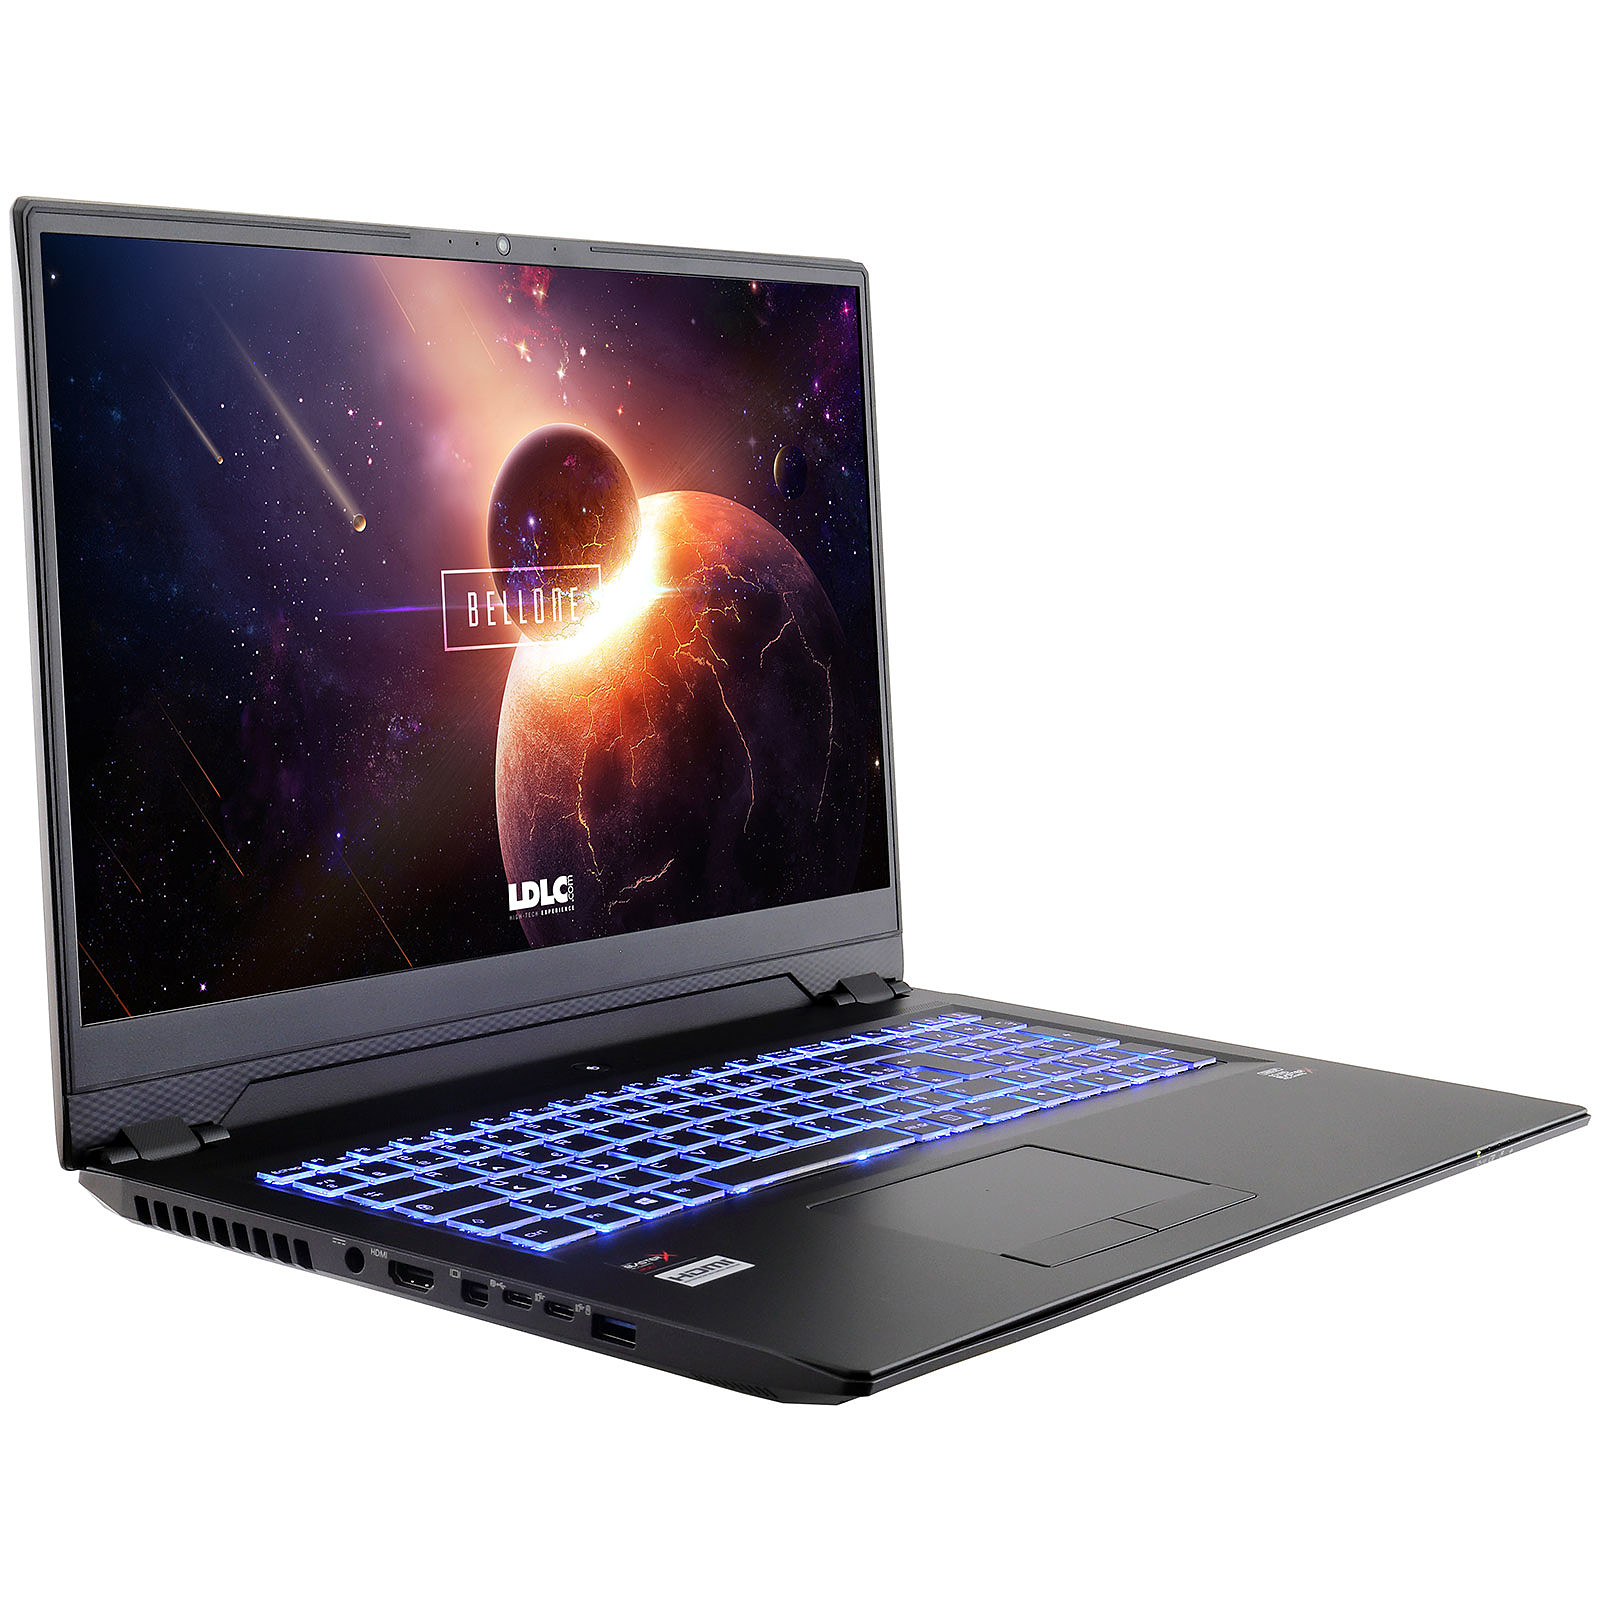 LDLC Bellone XF7-I7-32-S40M5